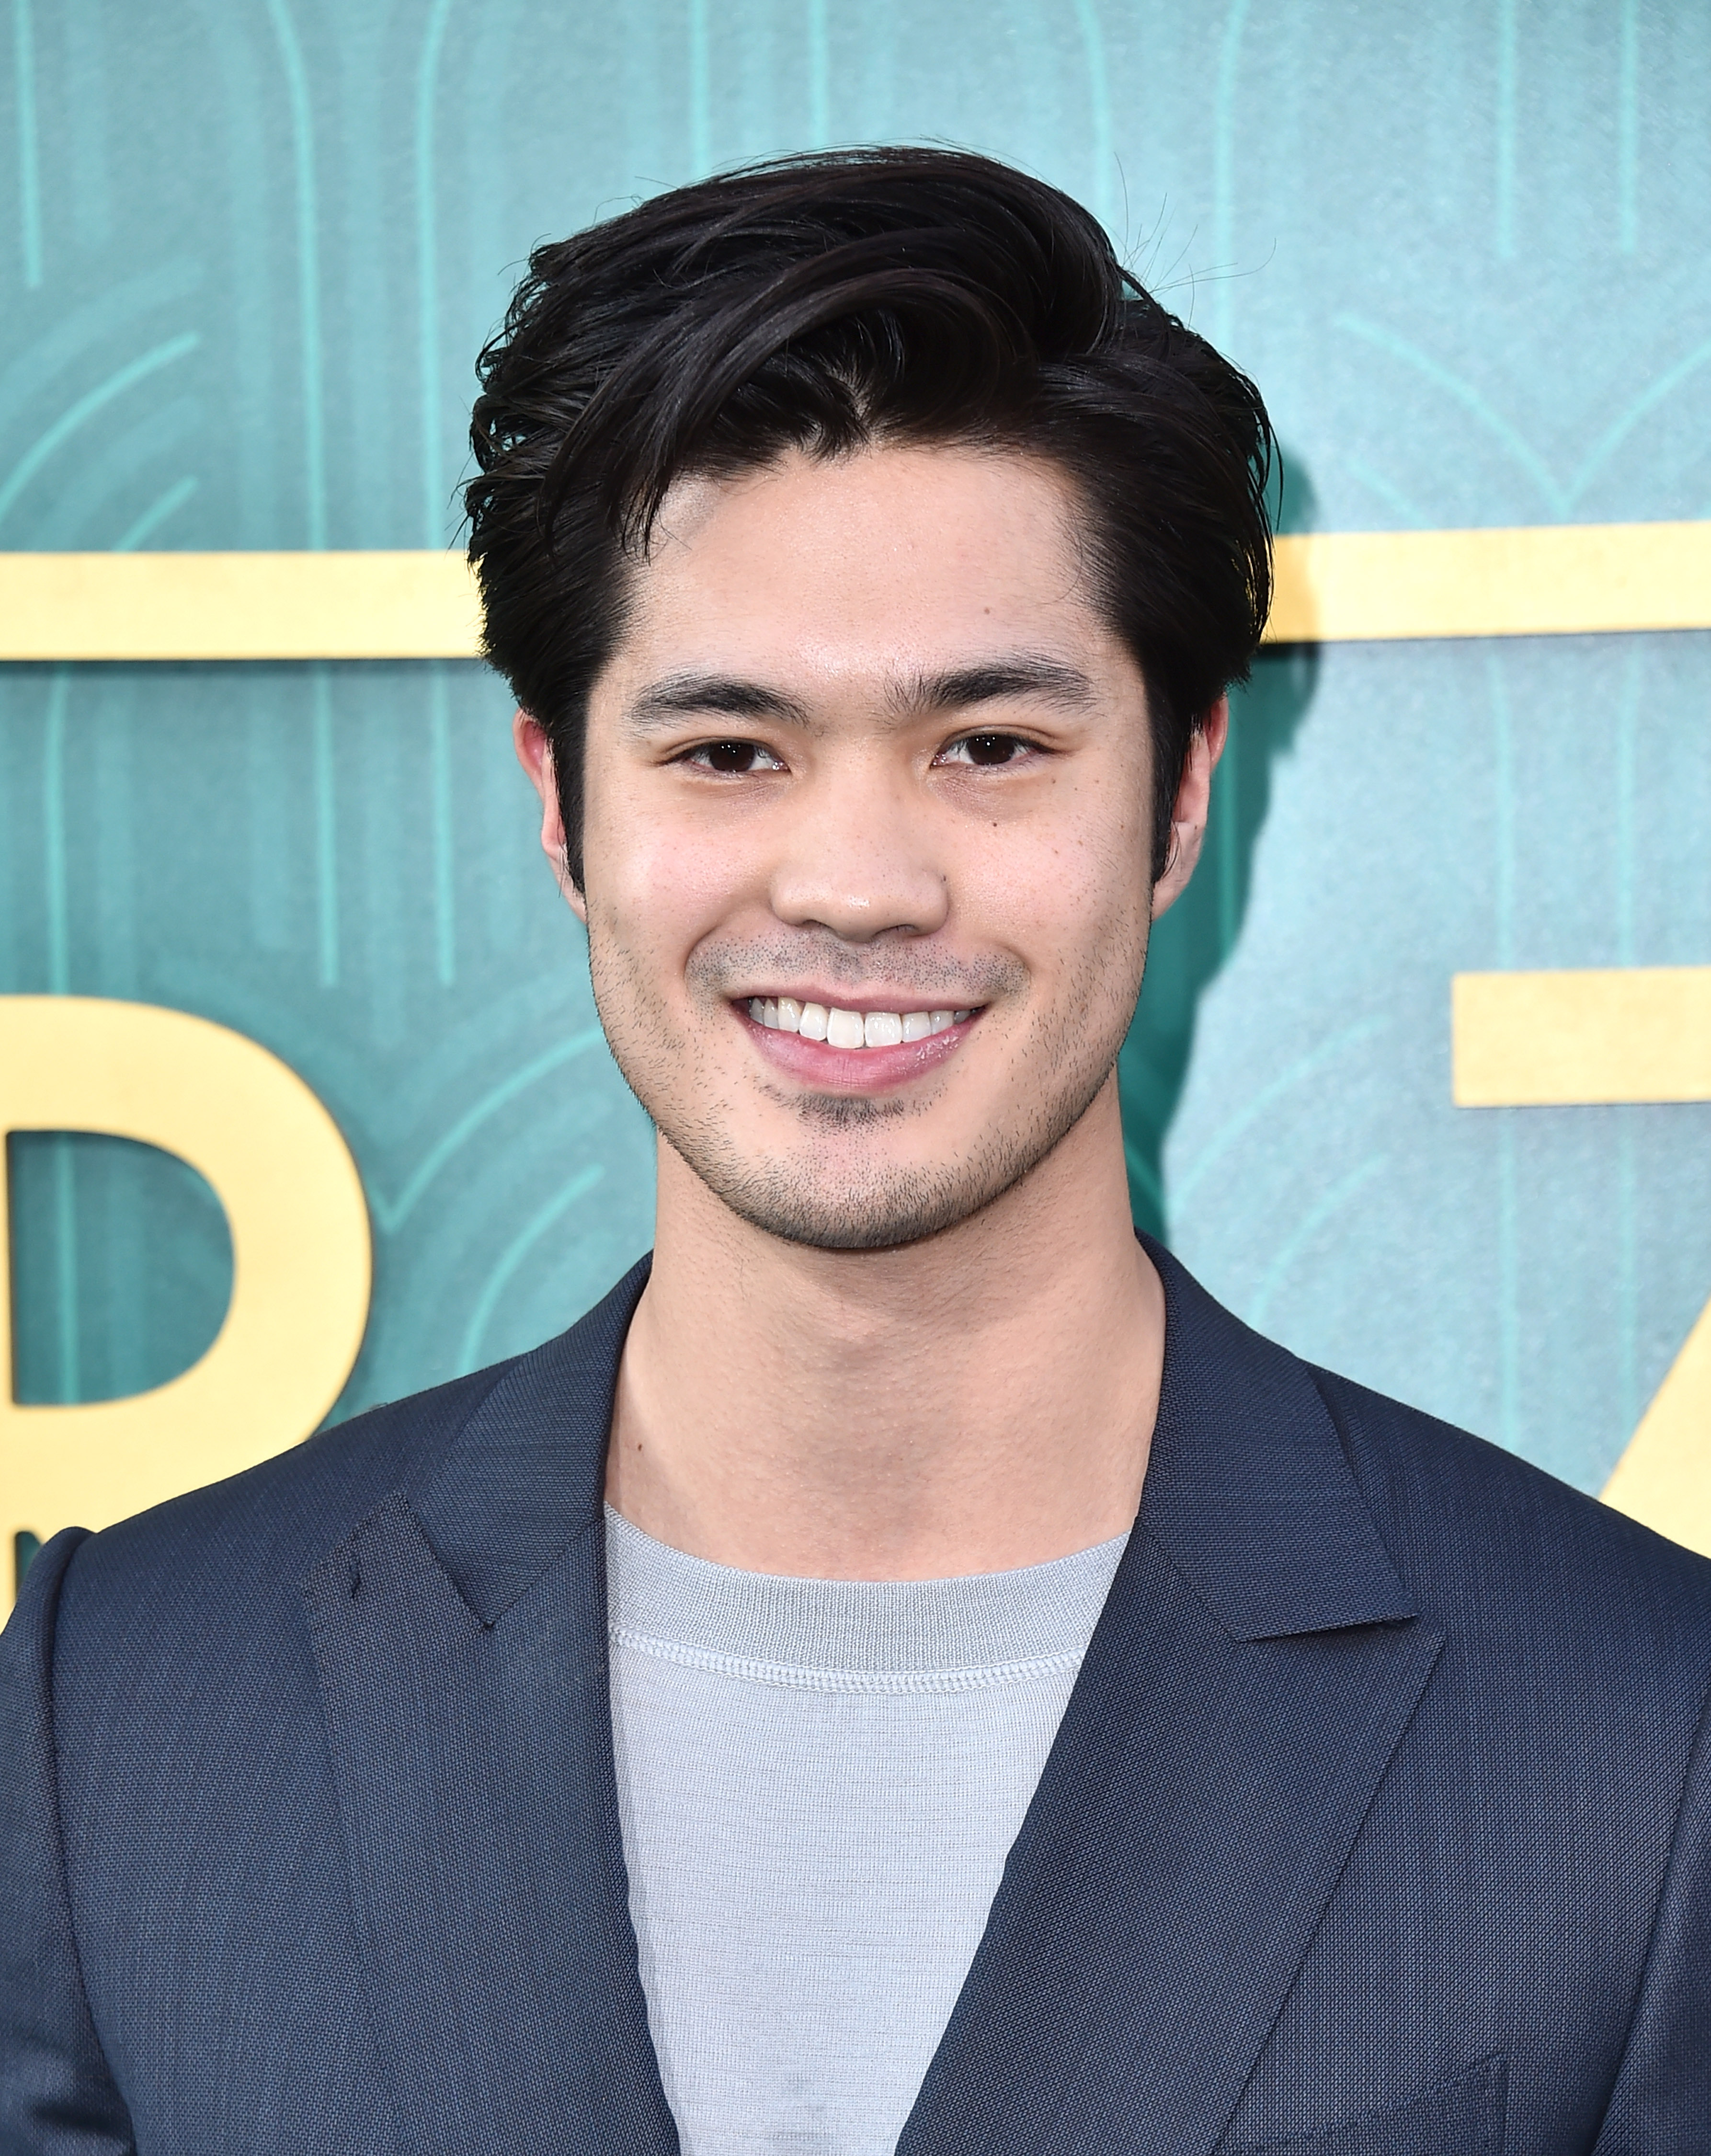 ross-butler-responde-acusacoes